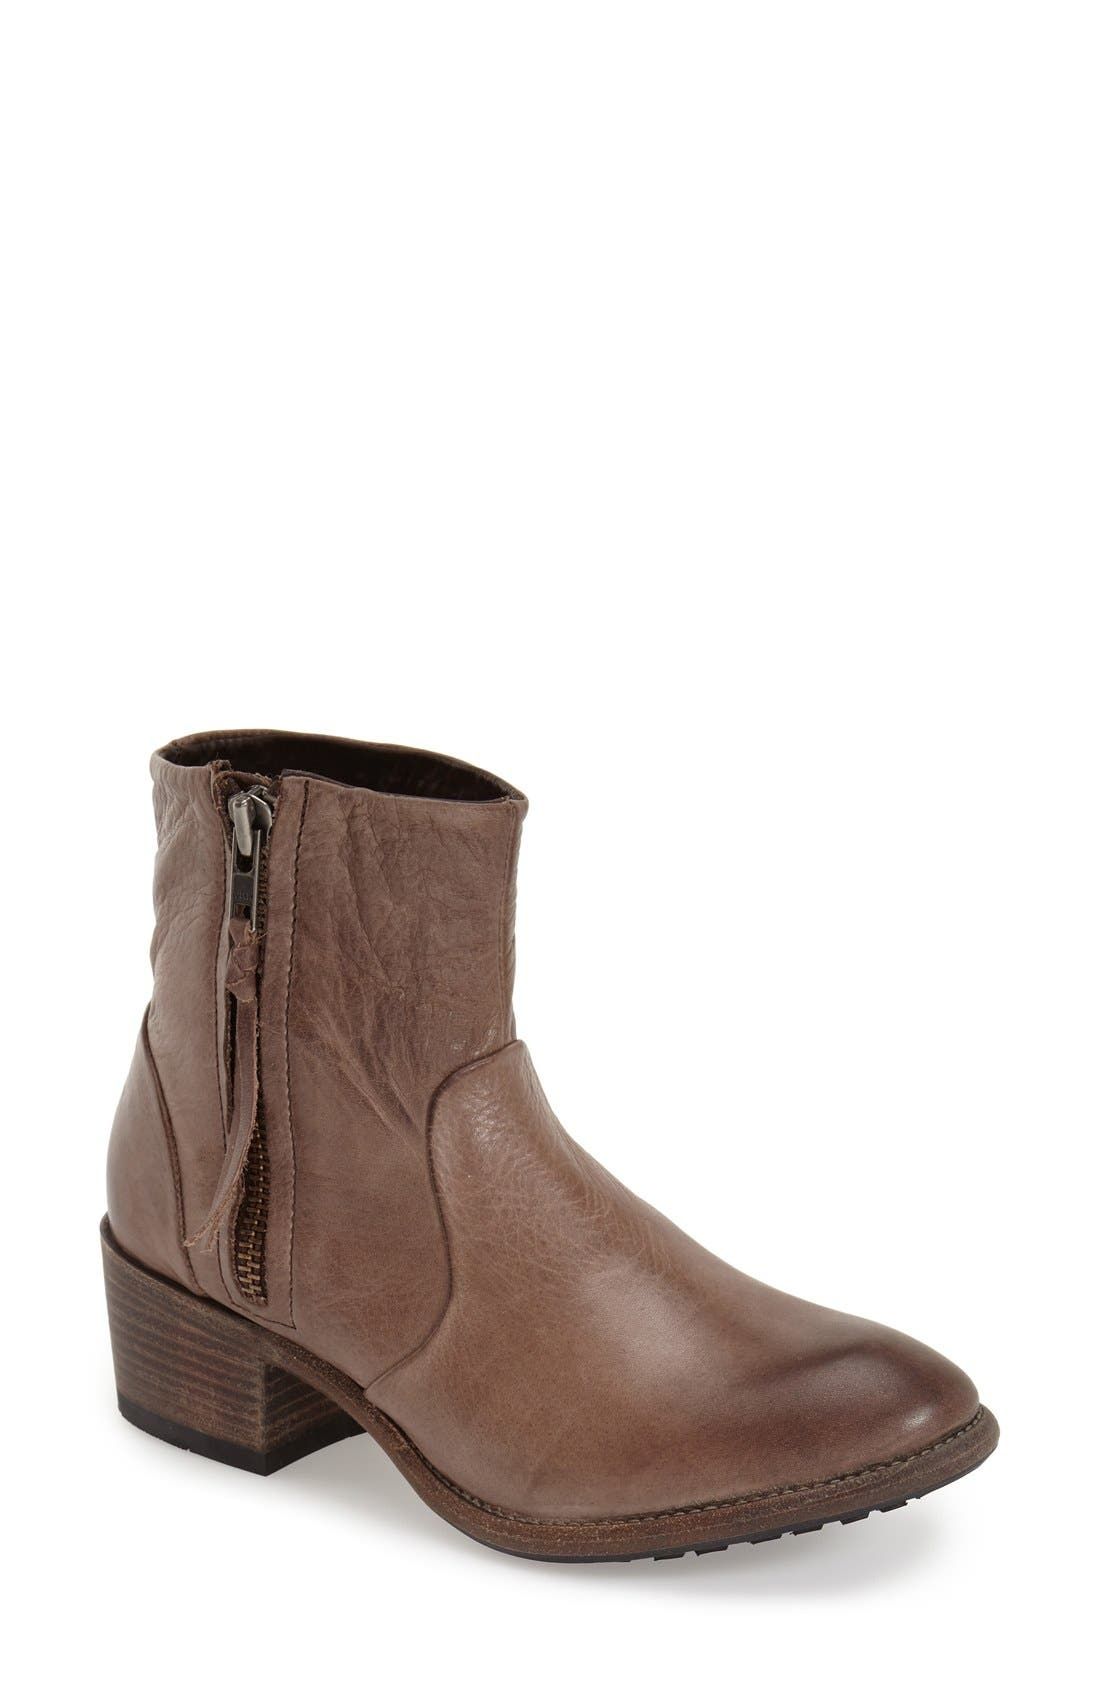 Alternate Image 1 Selected - Blackstone 'KL89' Bootie (Women)